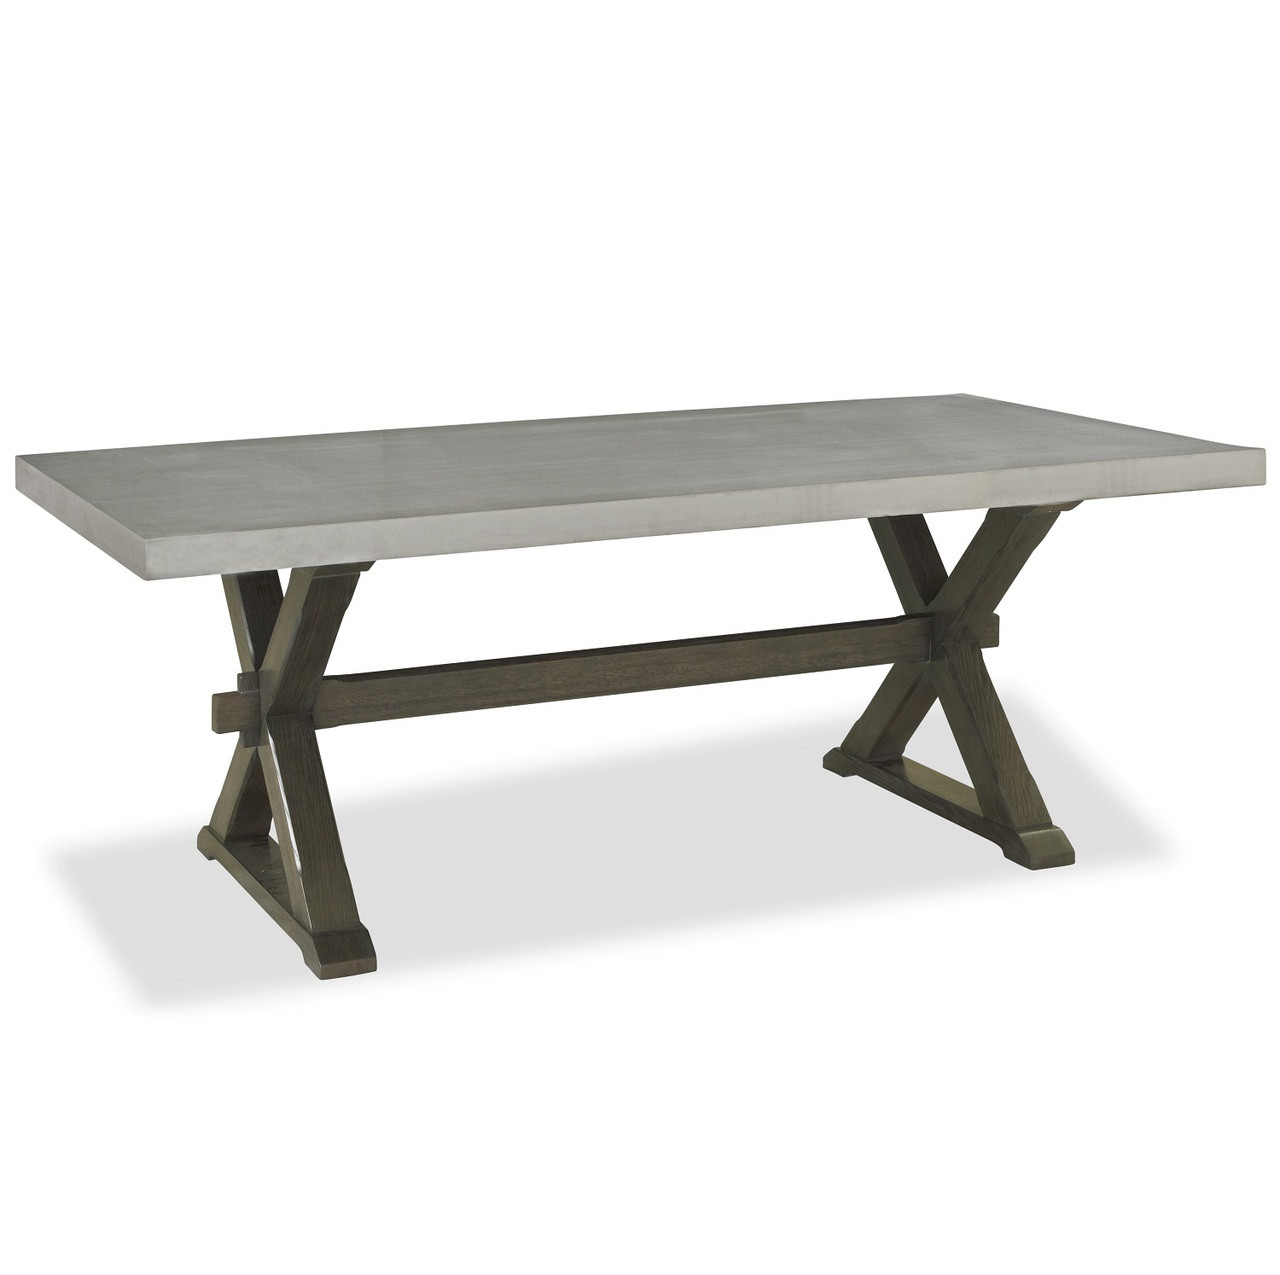 Flatiron Oak Wood Stainless Steel XBase Dining Table Zin Home - Industrial kitchen table stainless steel